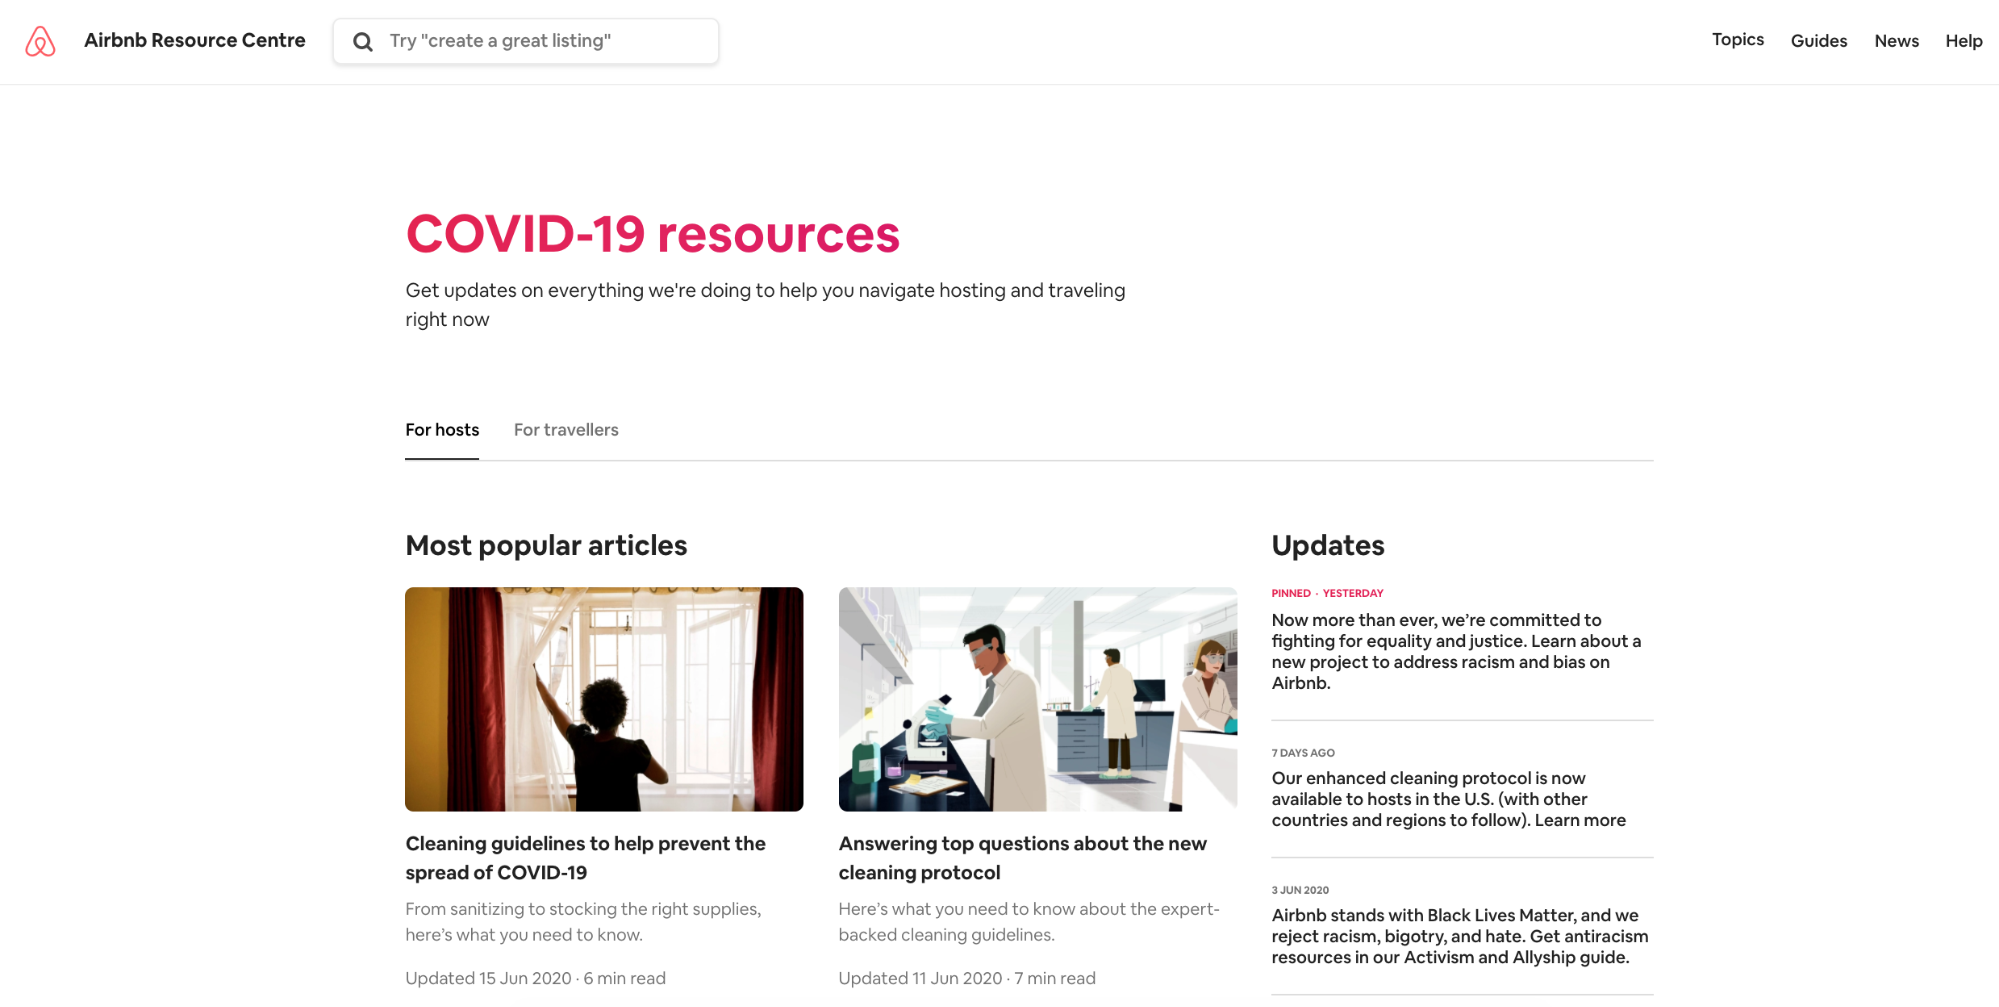 airbnb resource centre